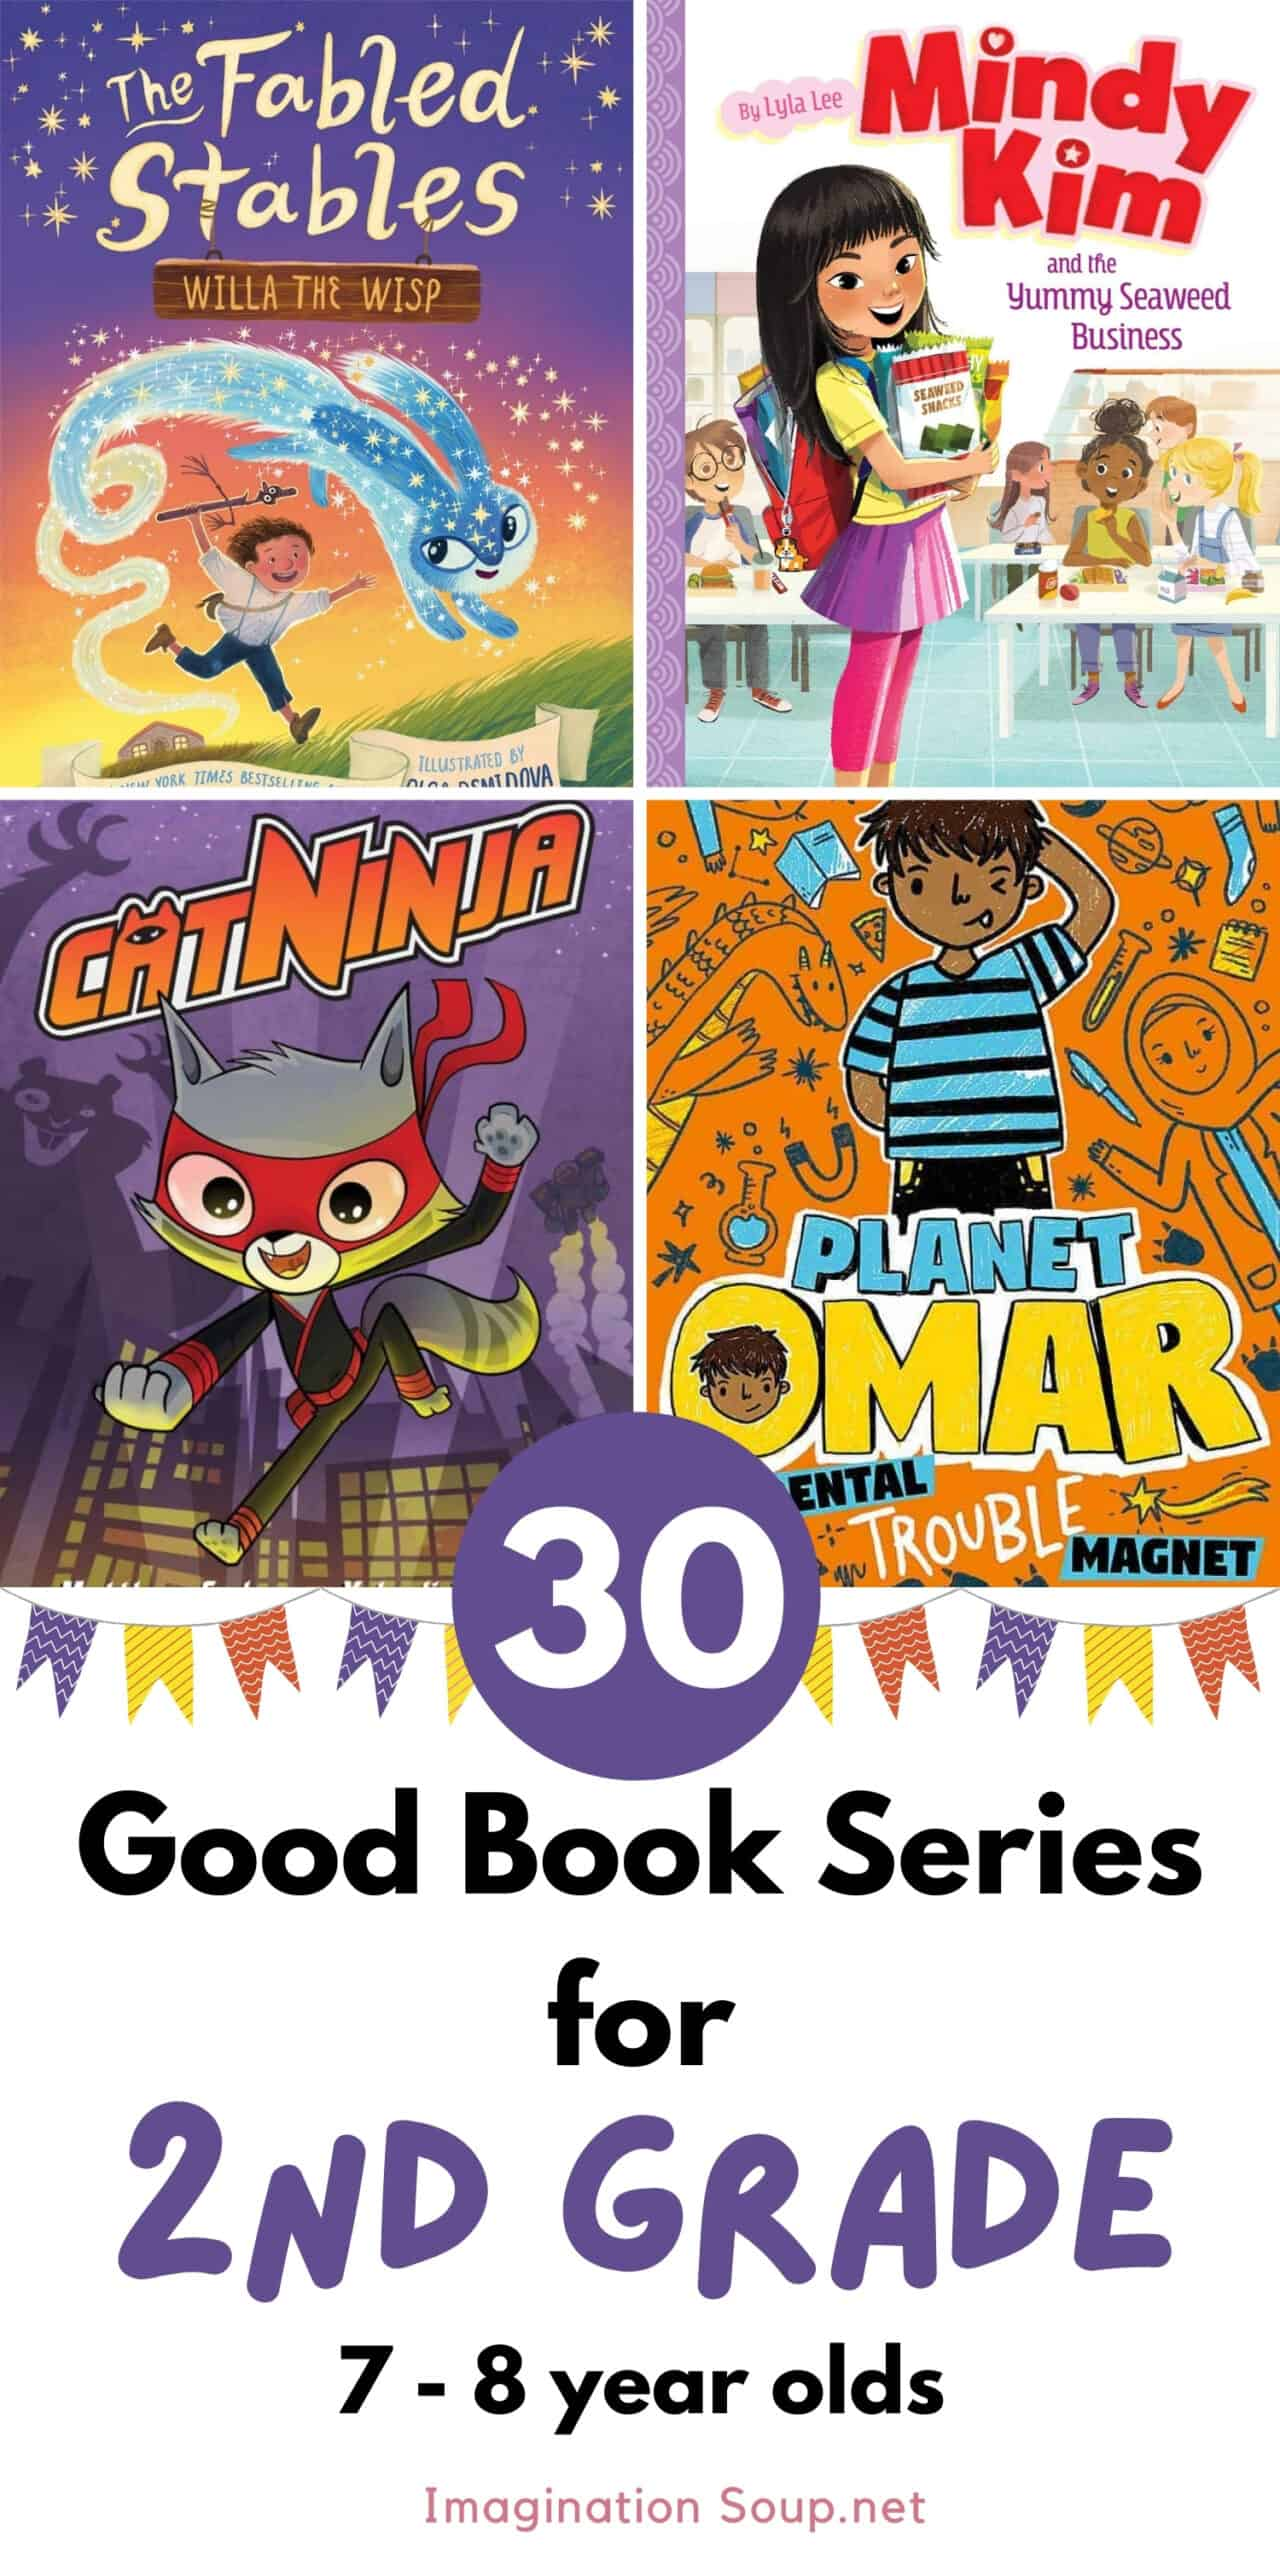 30 good book series for 2nd grade (ages 7 and 8)